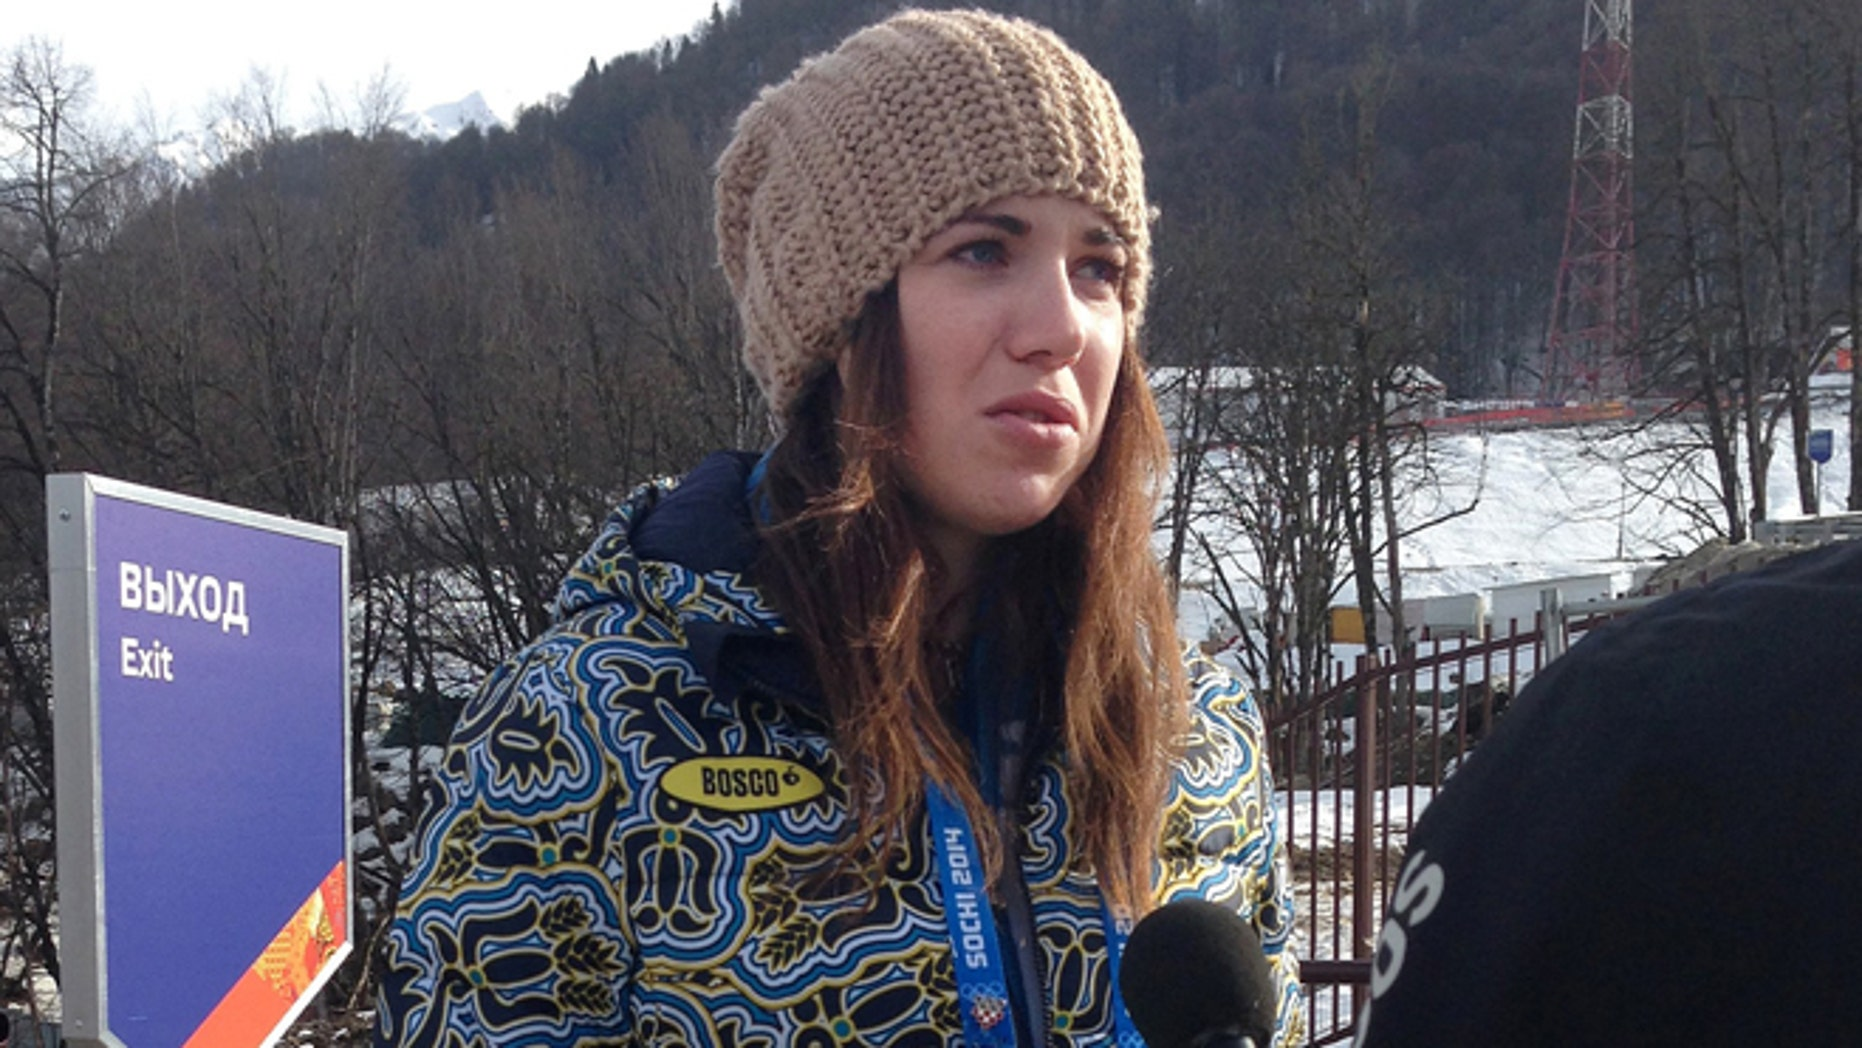 Feb. 20, 2014: Ukrainian skier Bogdana Matsotska speaks during an interview with the Associated Press at the Sochi 2014 Winter Olympics in Krasnaya Polyana, Russia. The International Olympic Committee said on Thursday, Feb. 20, that Matsotska is leaving the Olympics in response to the violence in her country.